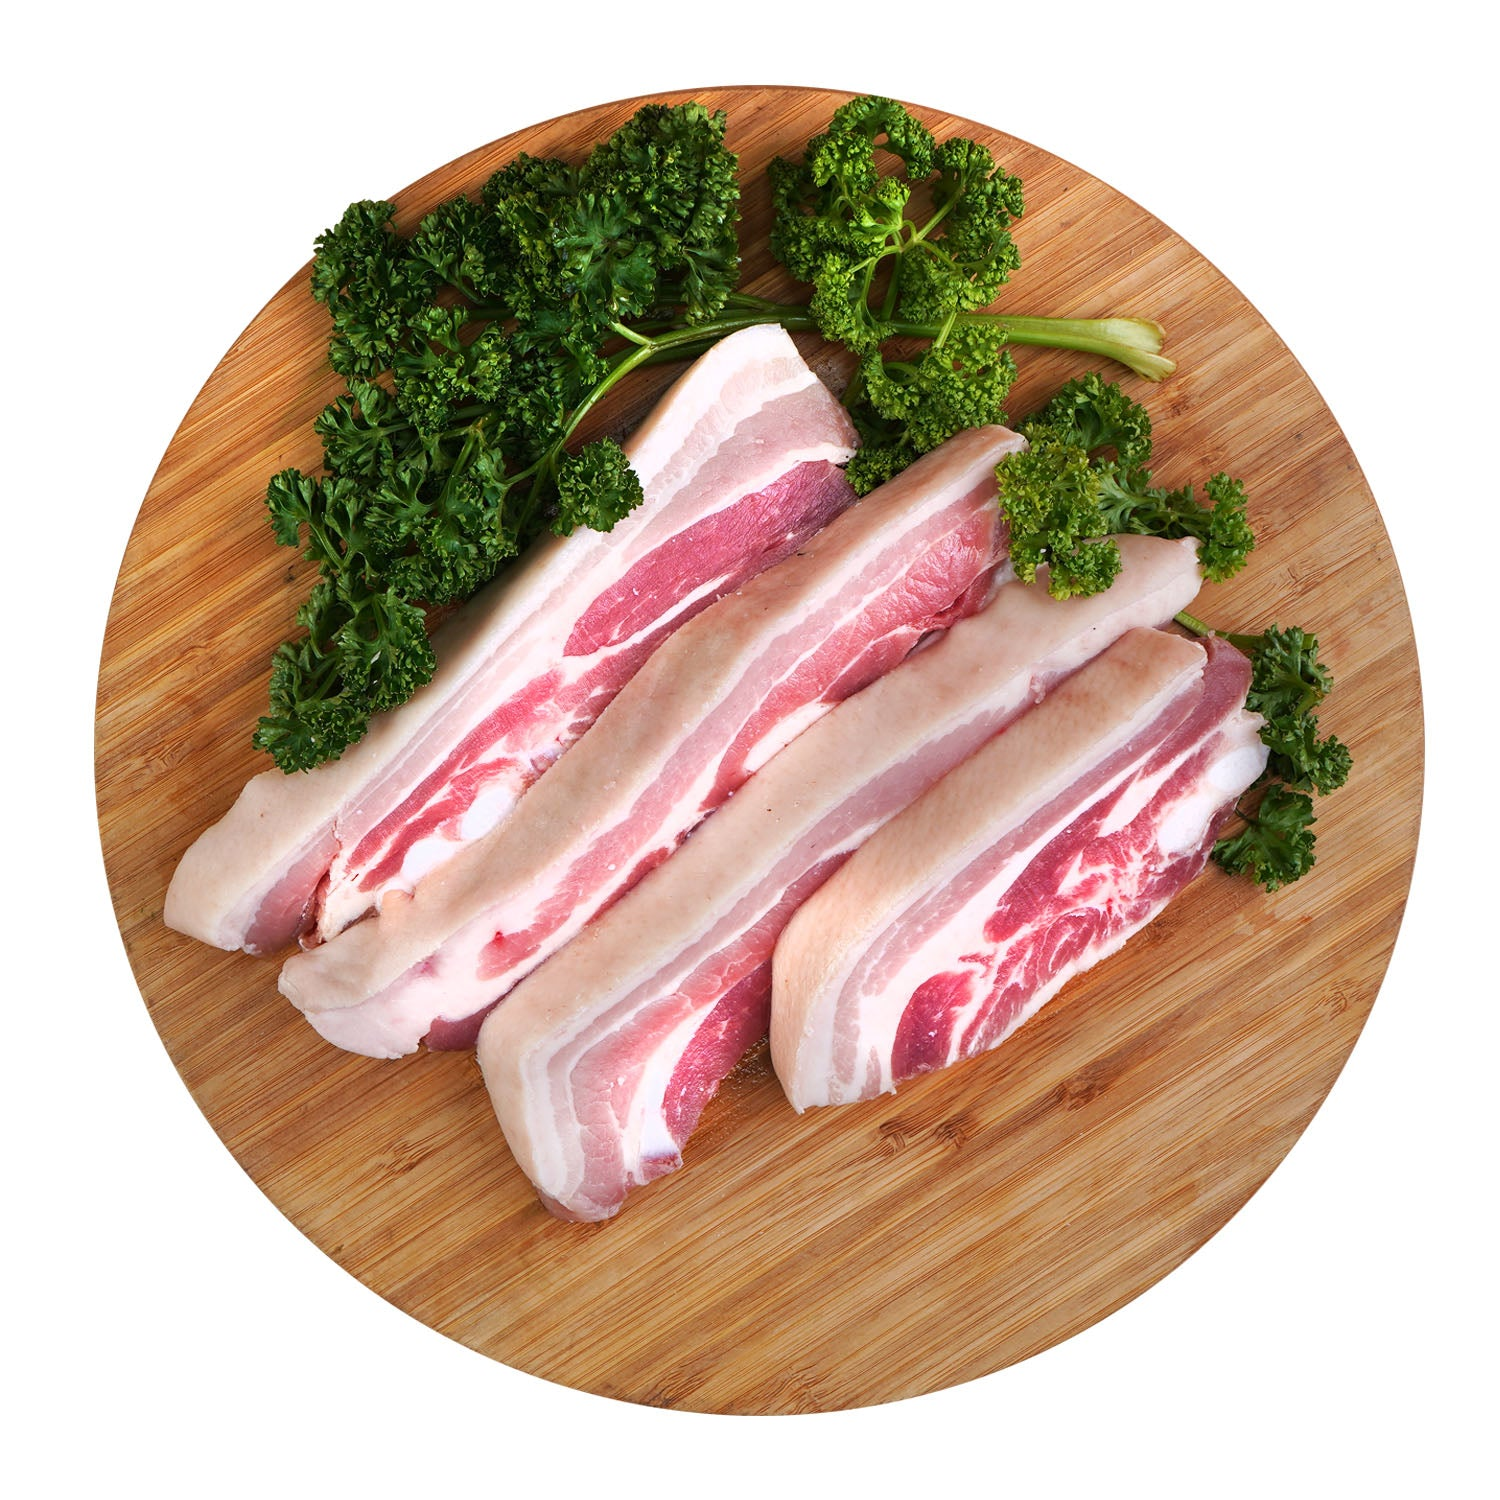 Liempo - Sliced (per 500g)